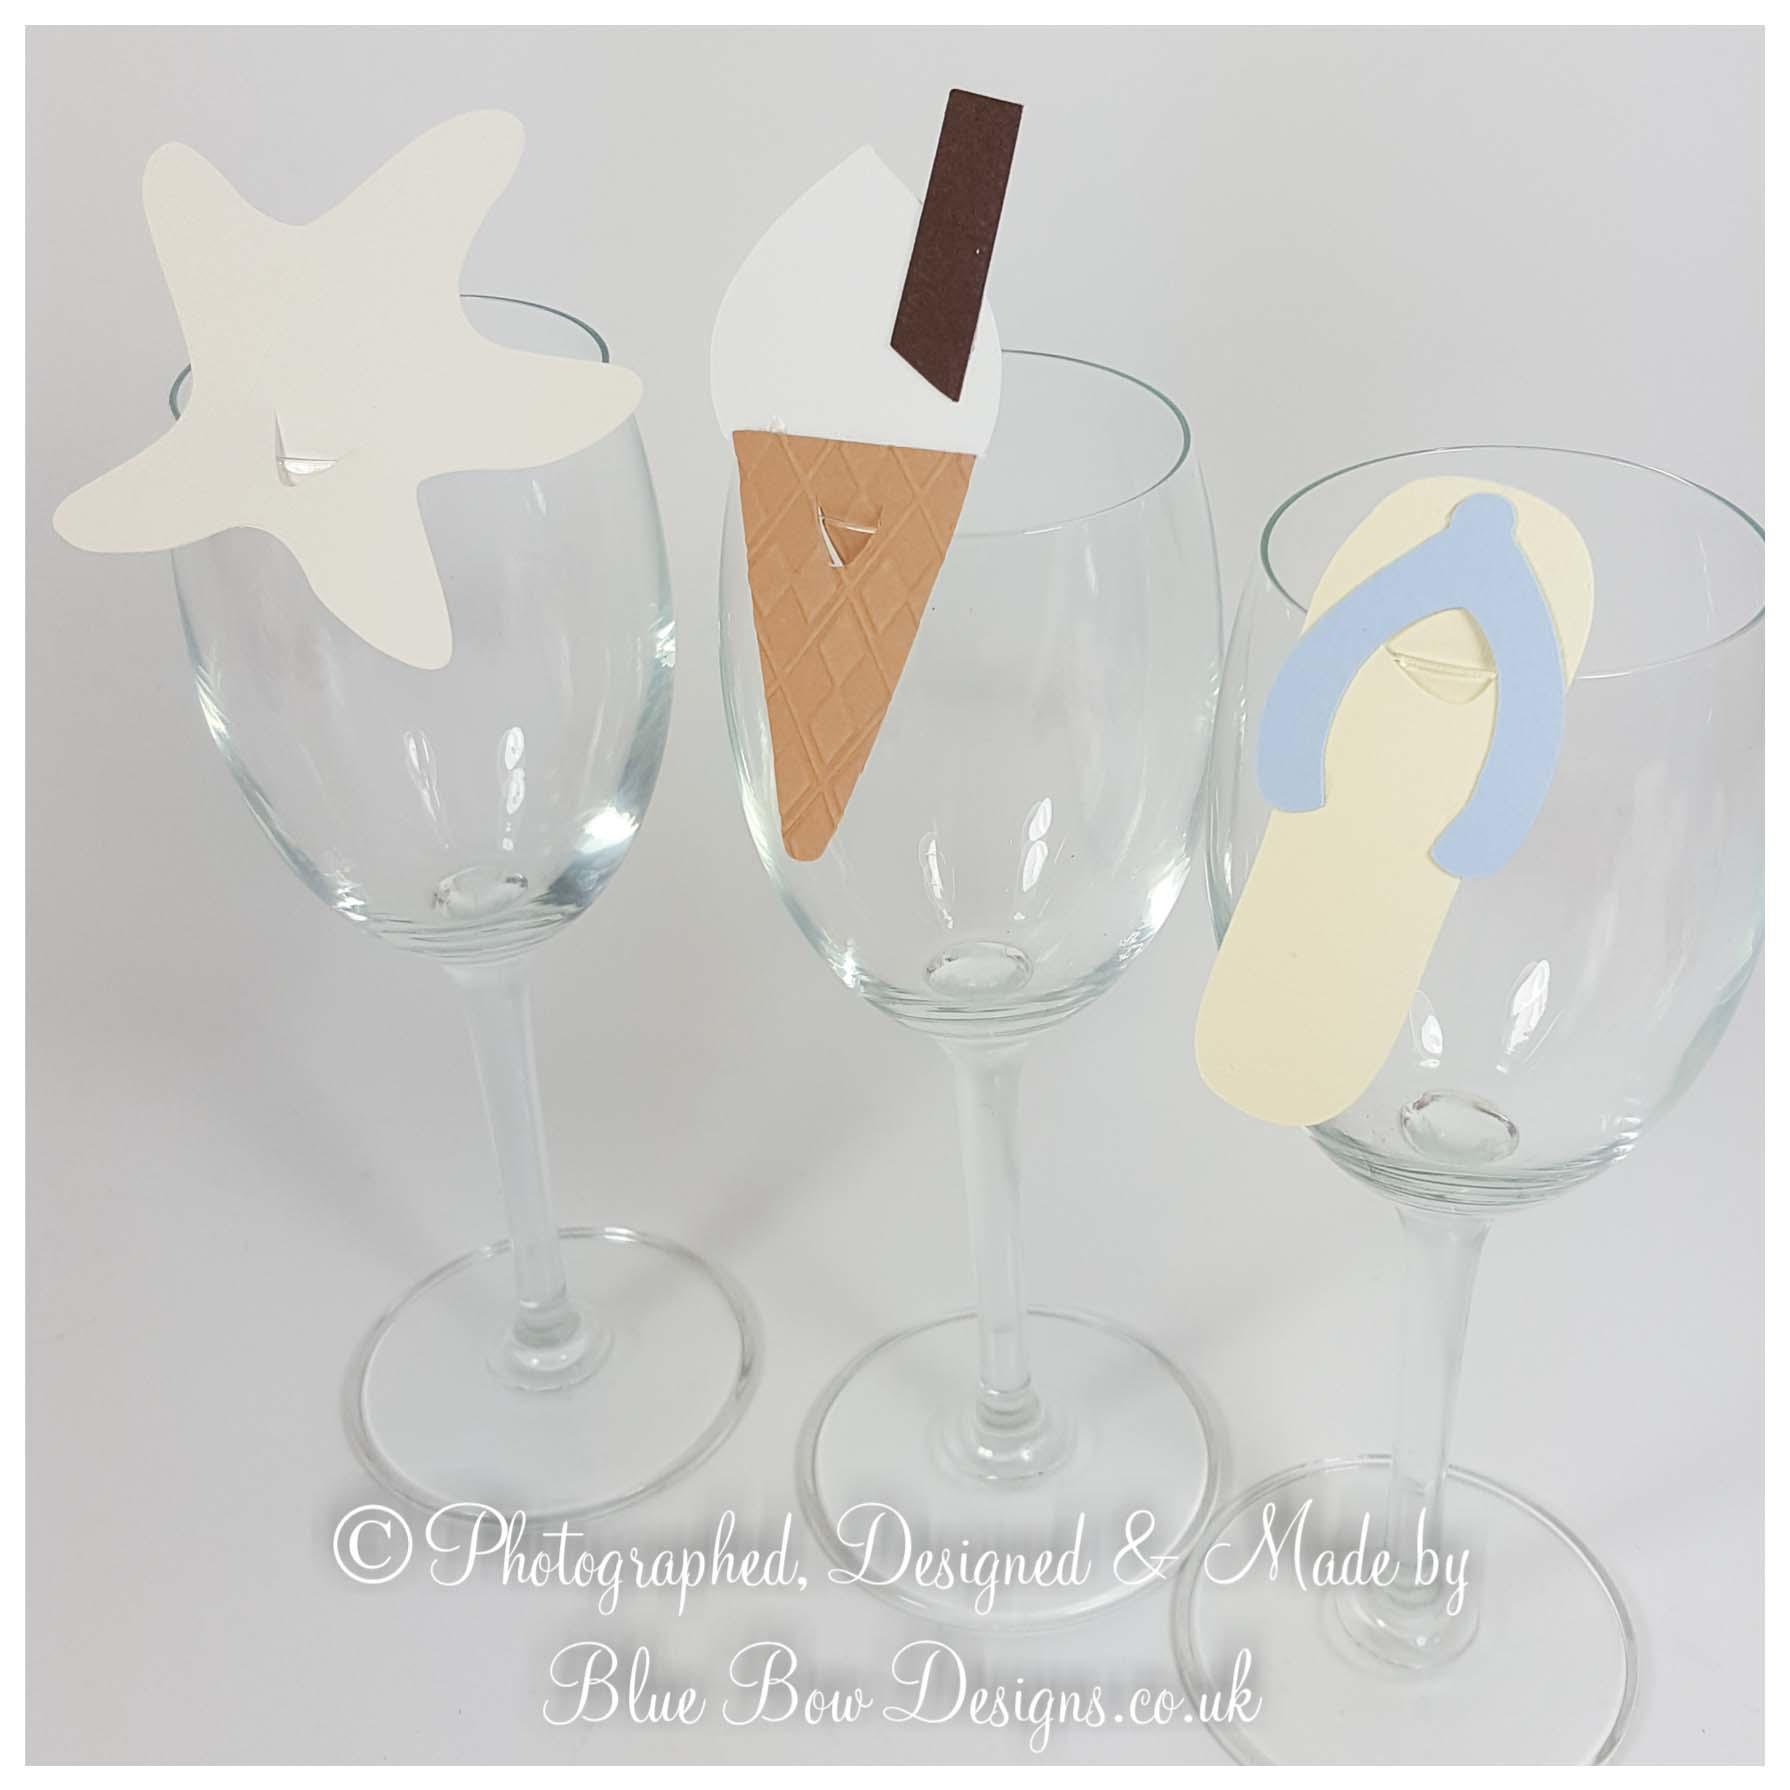 Flip flop shaped wine glass place cards